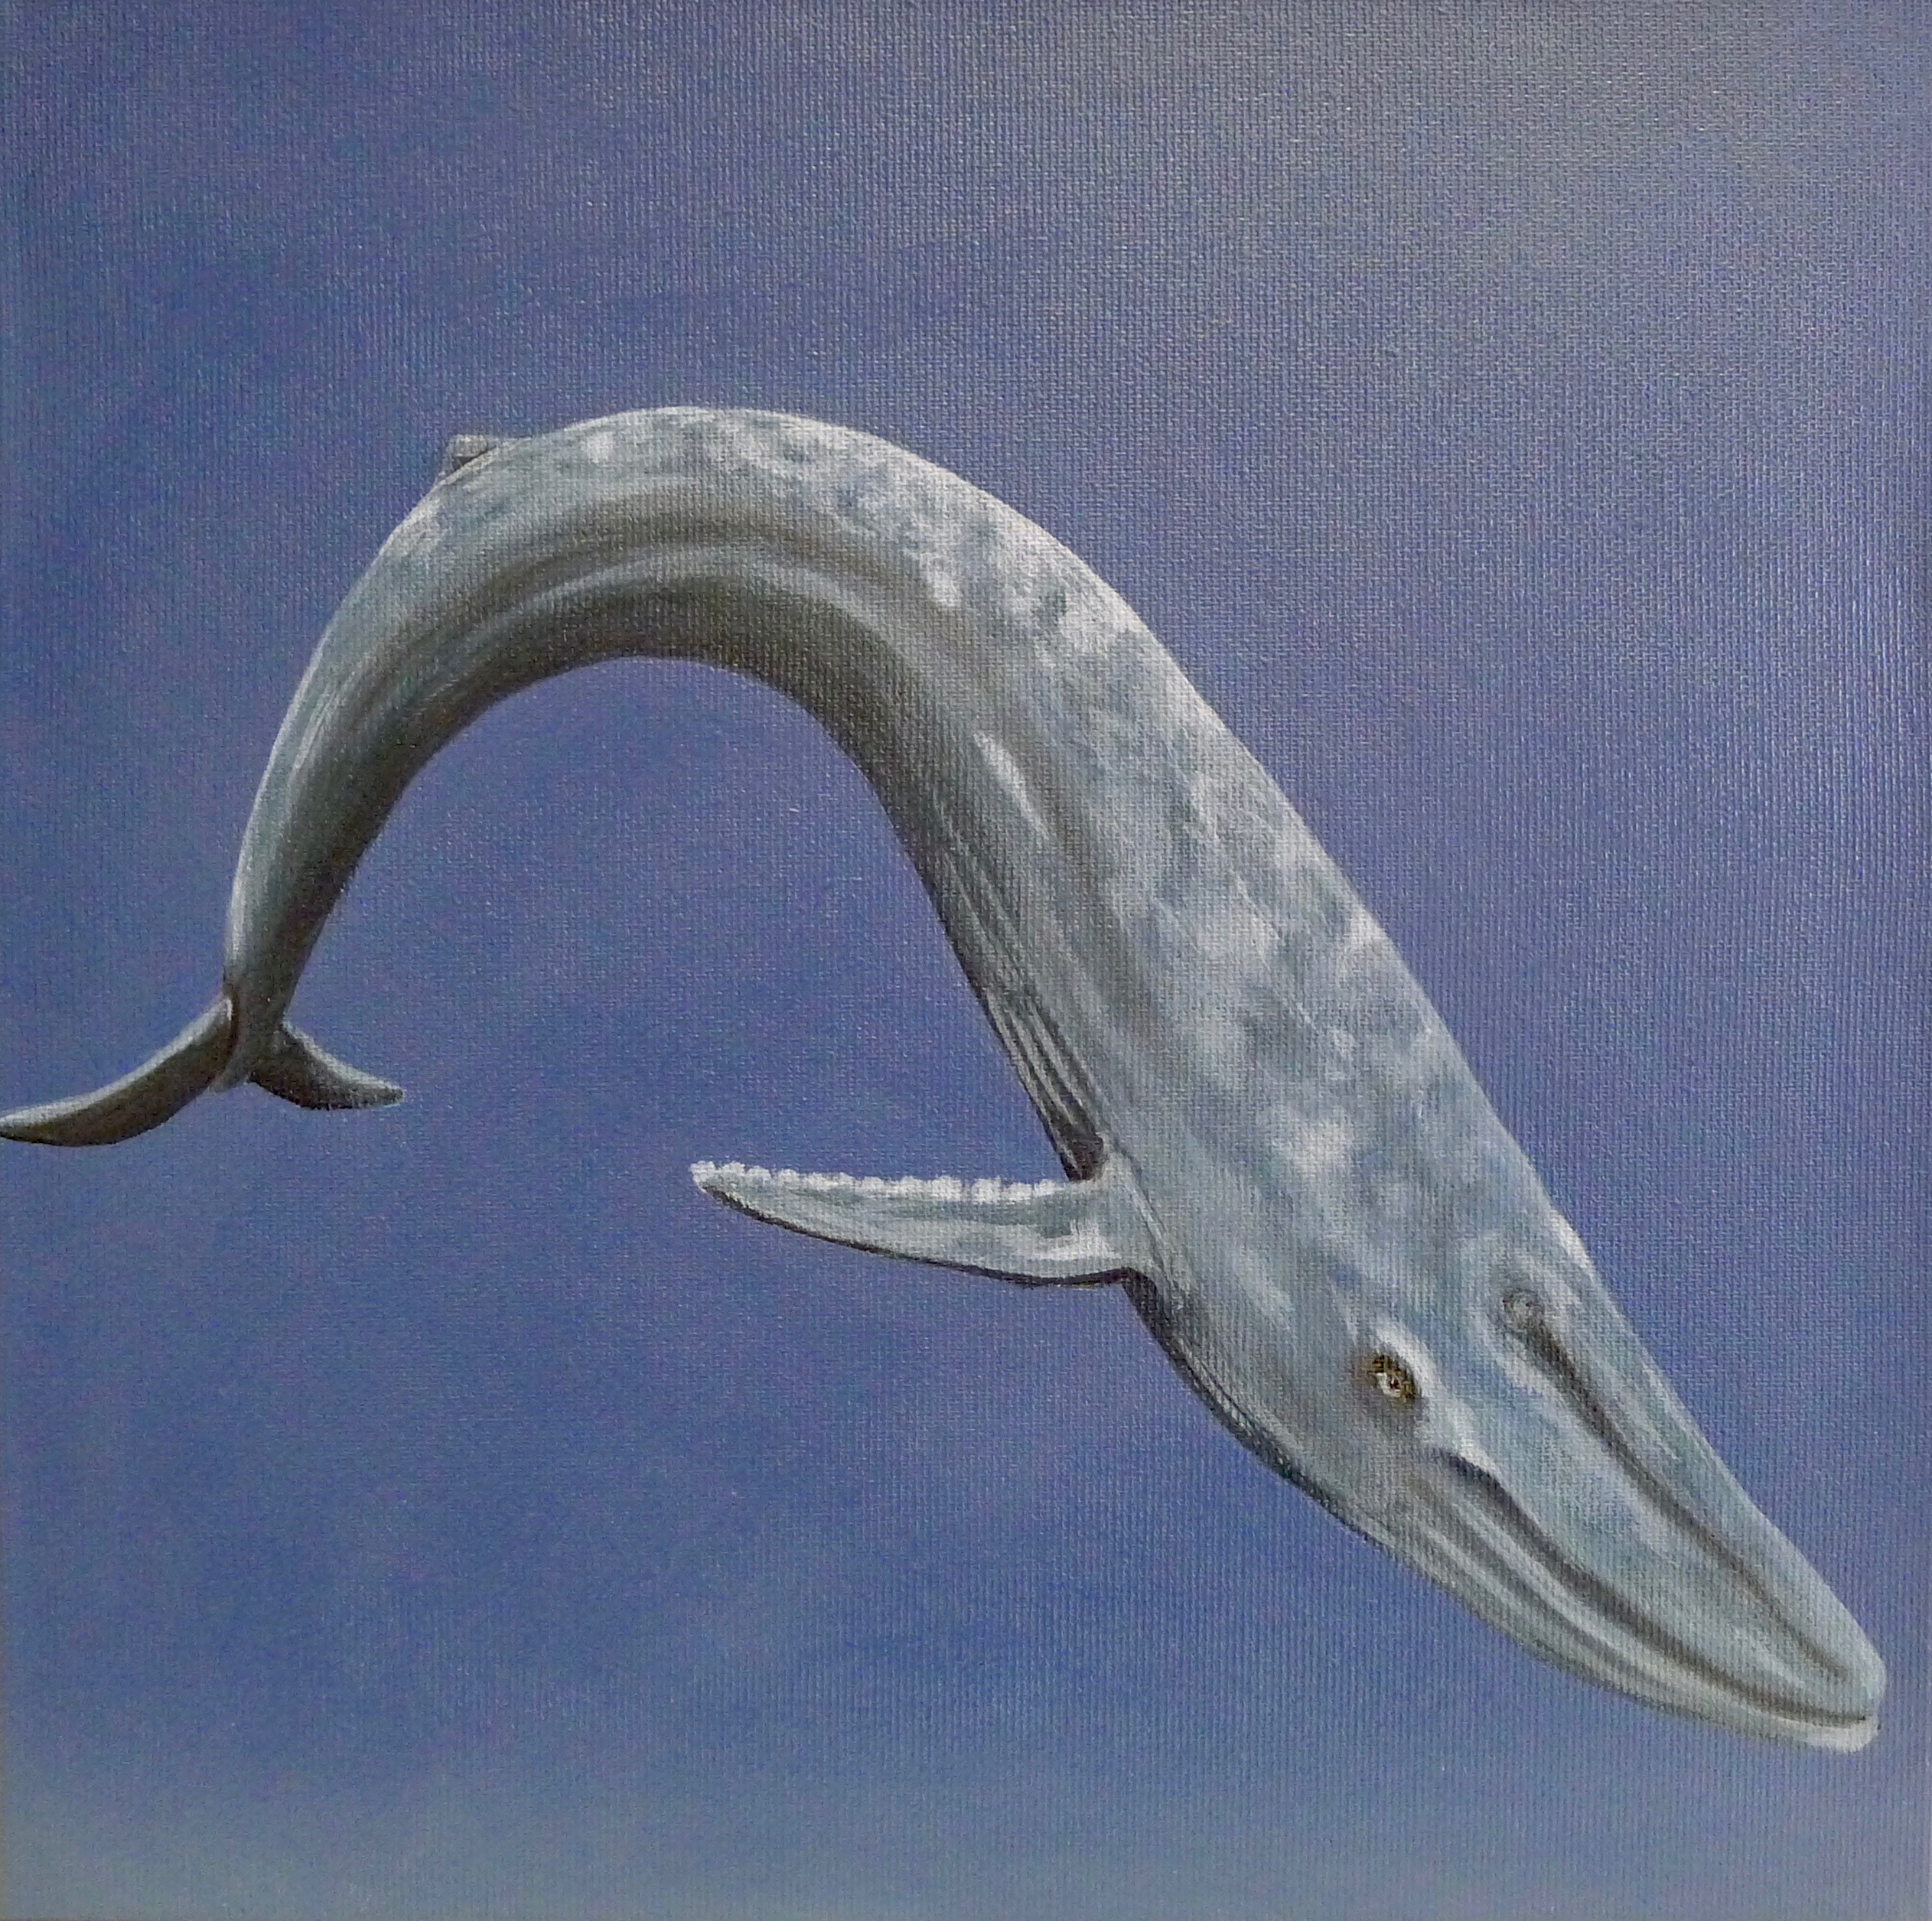 The Bluewhale